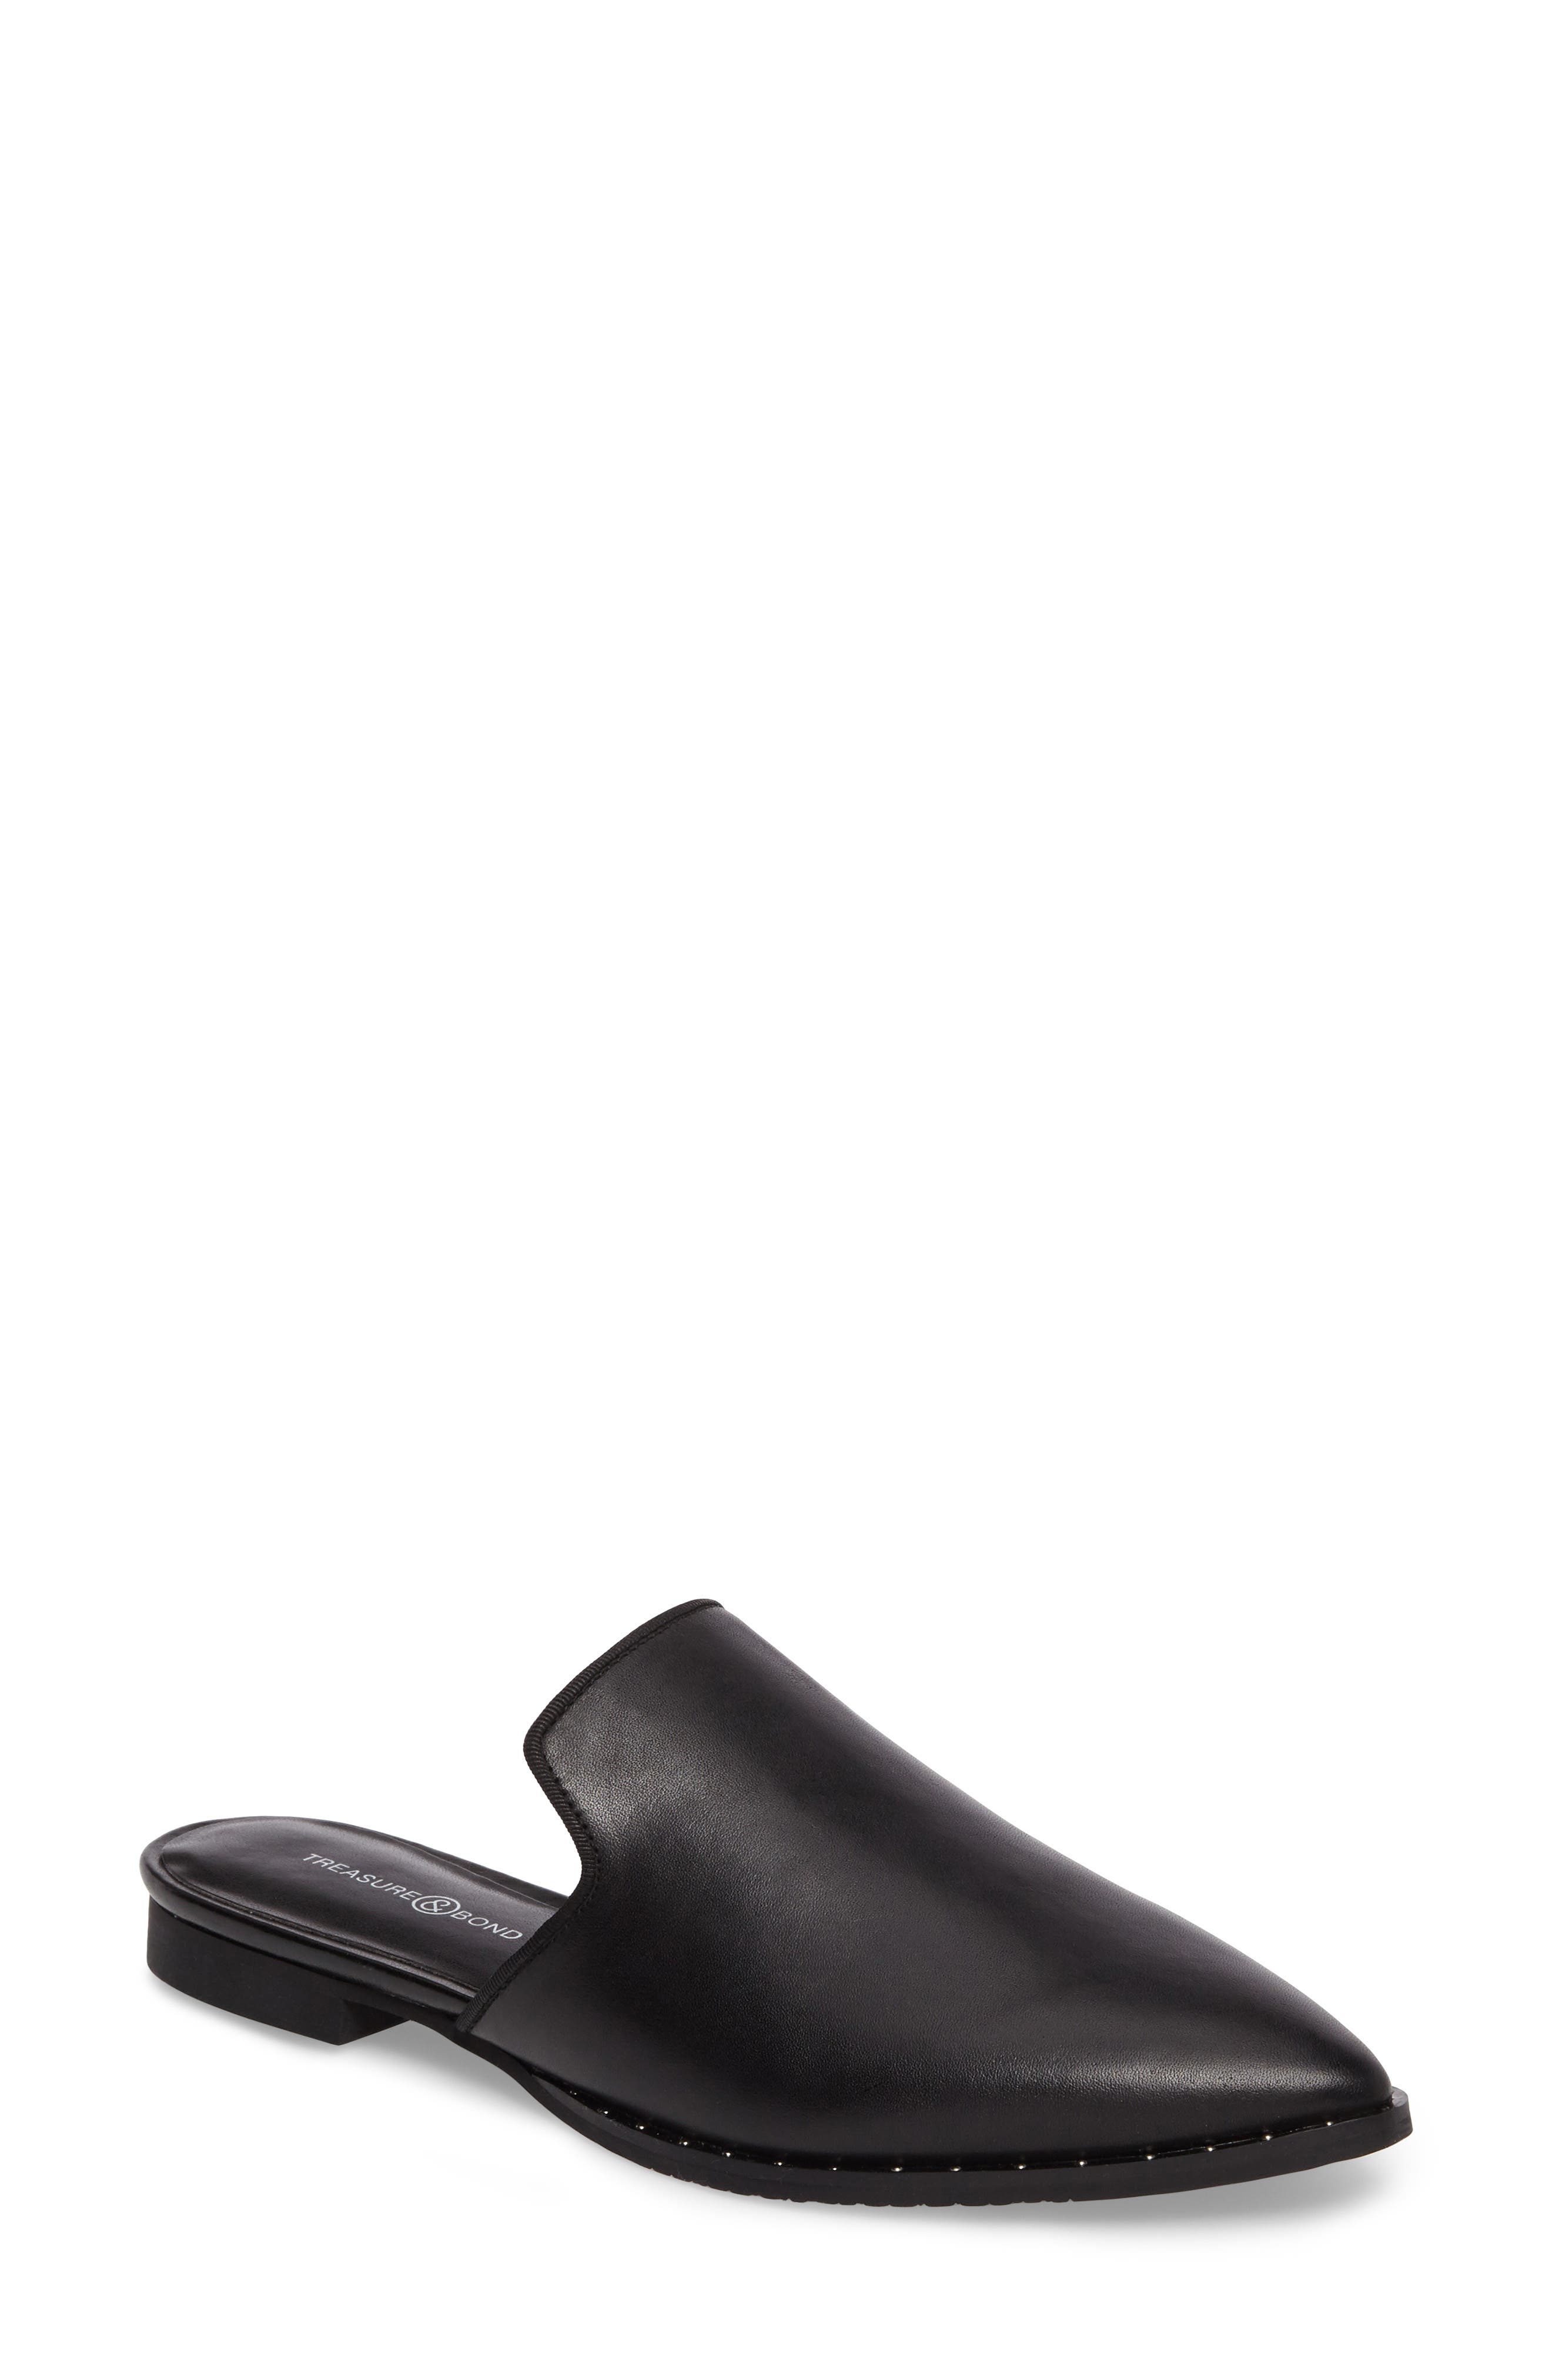 Keaton Loafer Mule,                         Main,                         color, Black Leather